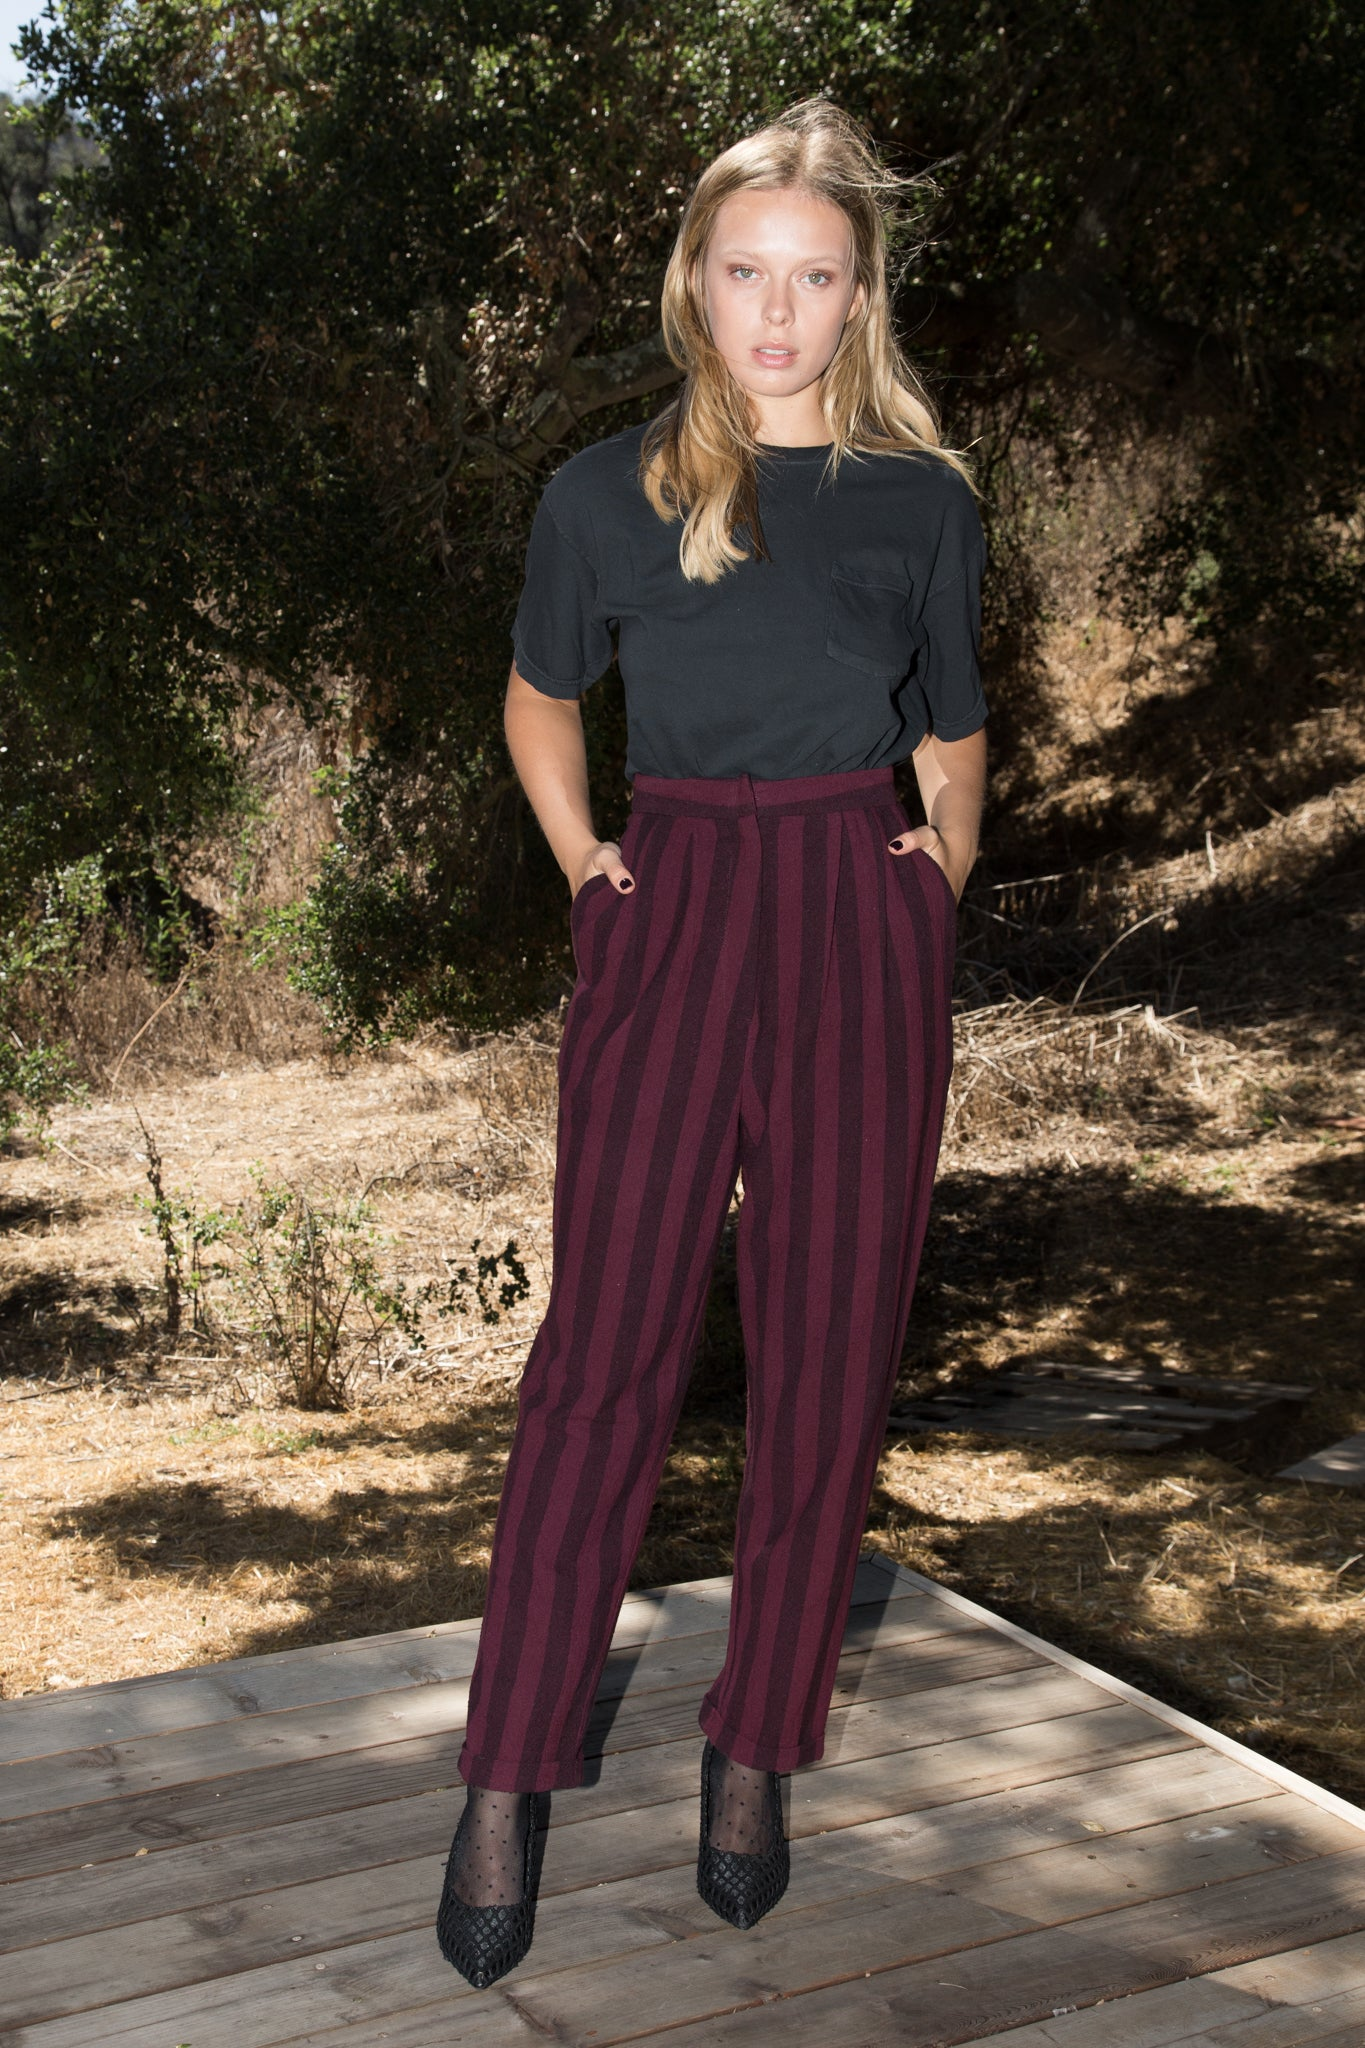 Model wears size 2 BETTE TROUSER - BURGUNDY STRIPE by Heidi Merrick (Front)